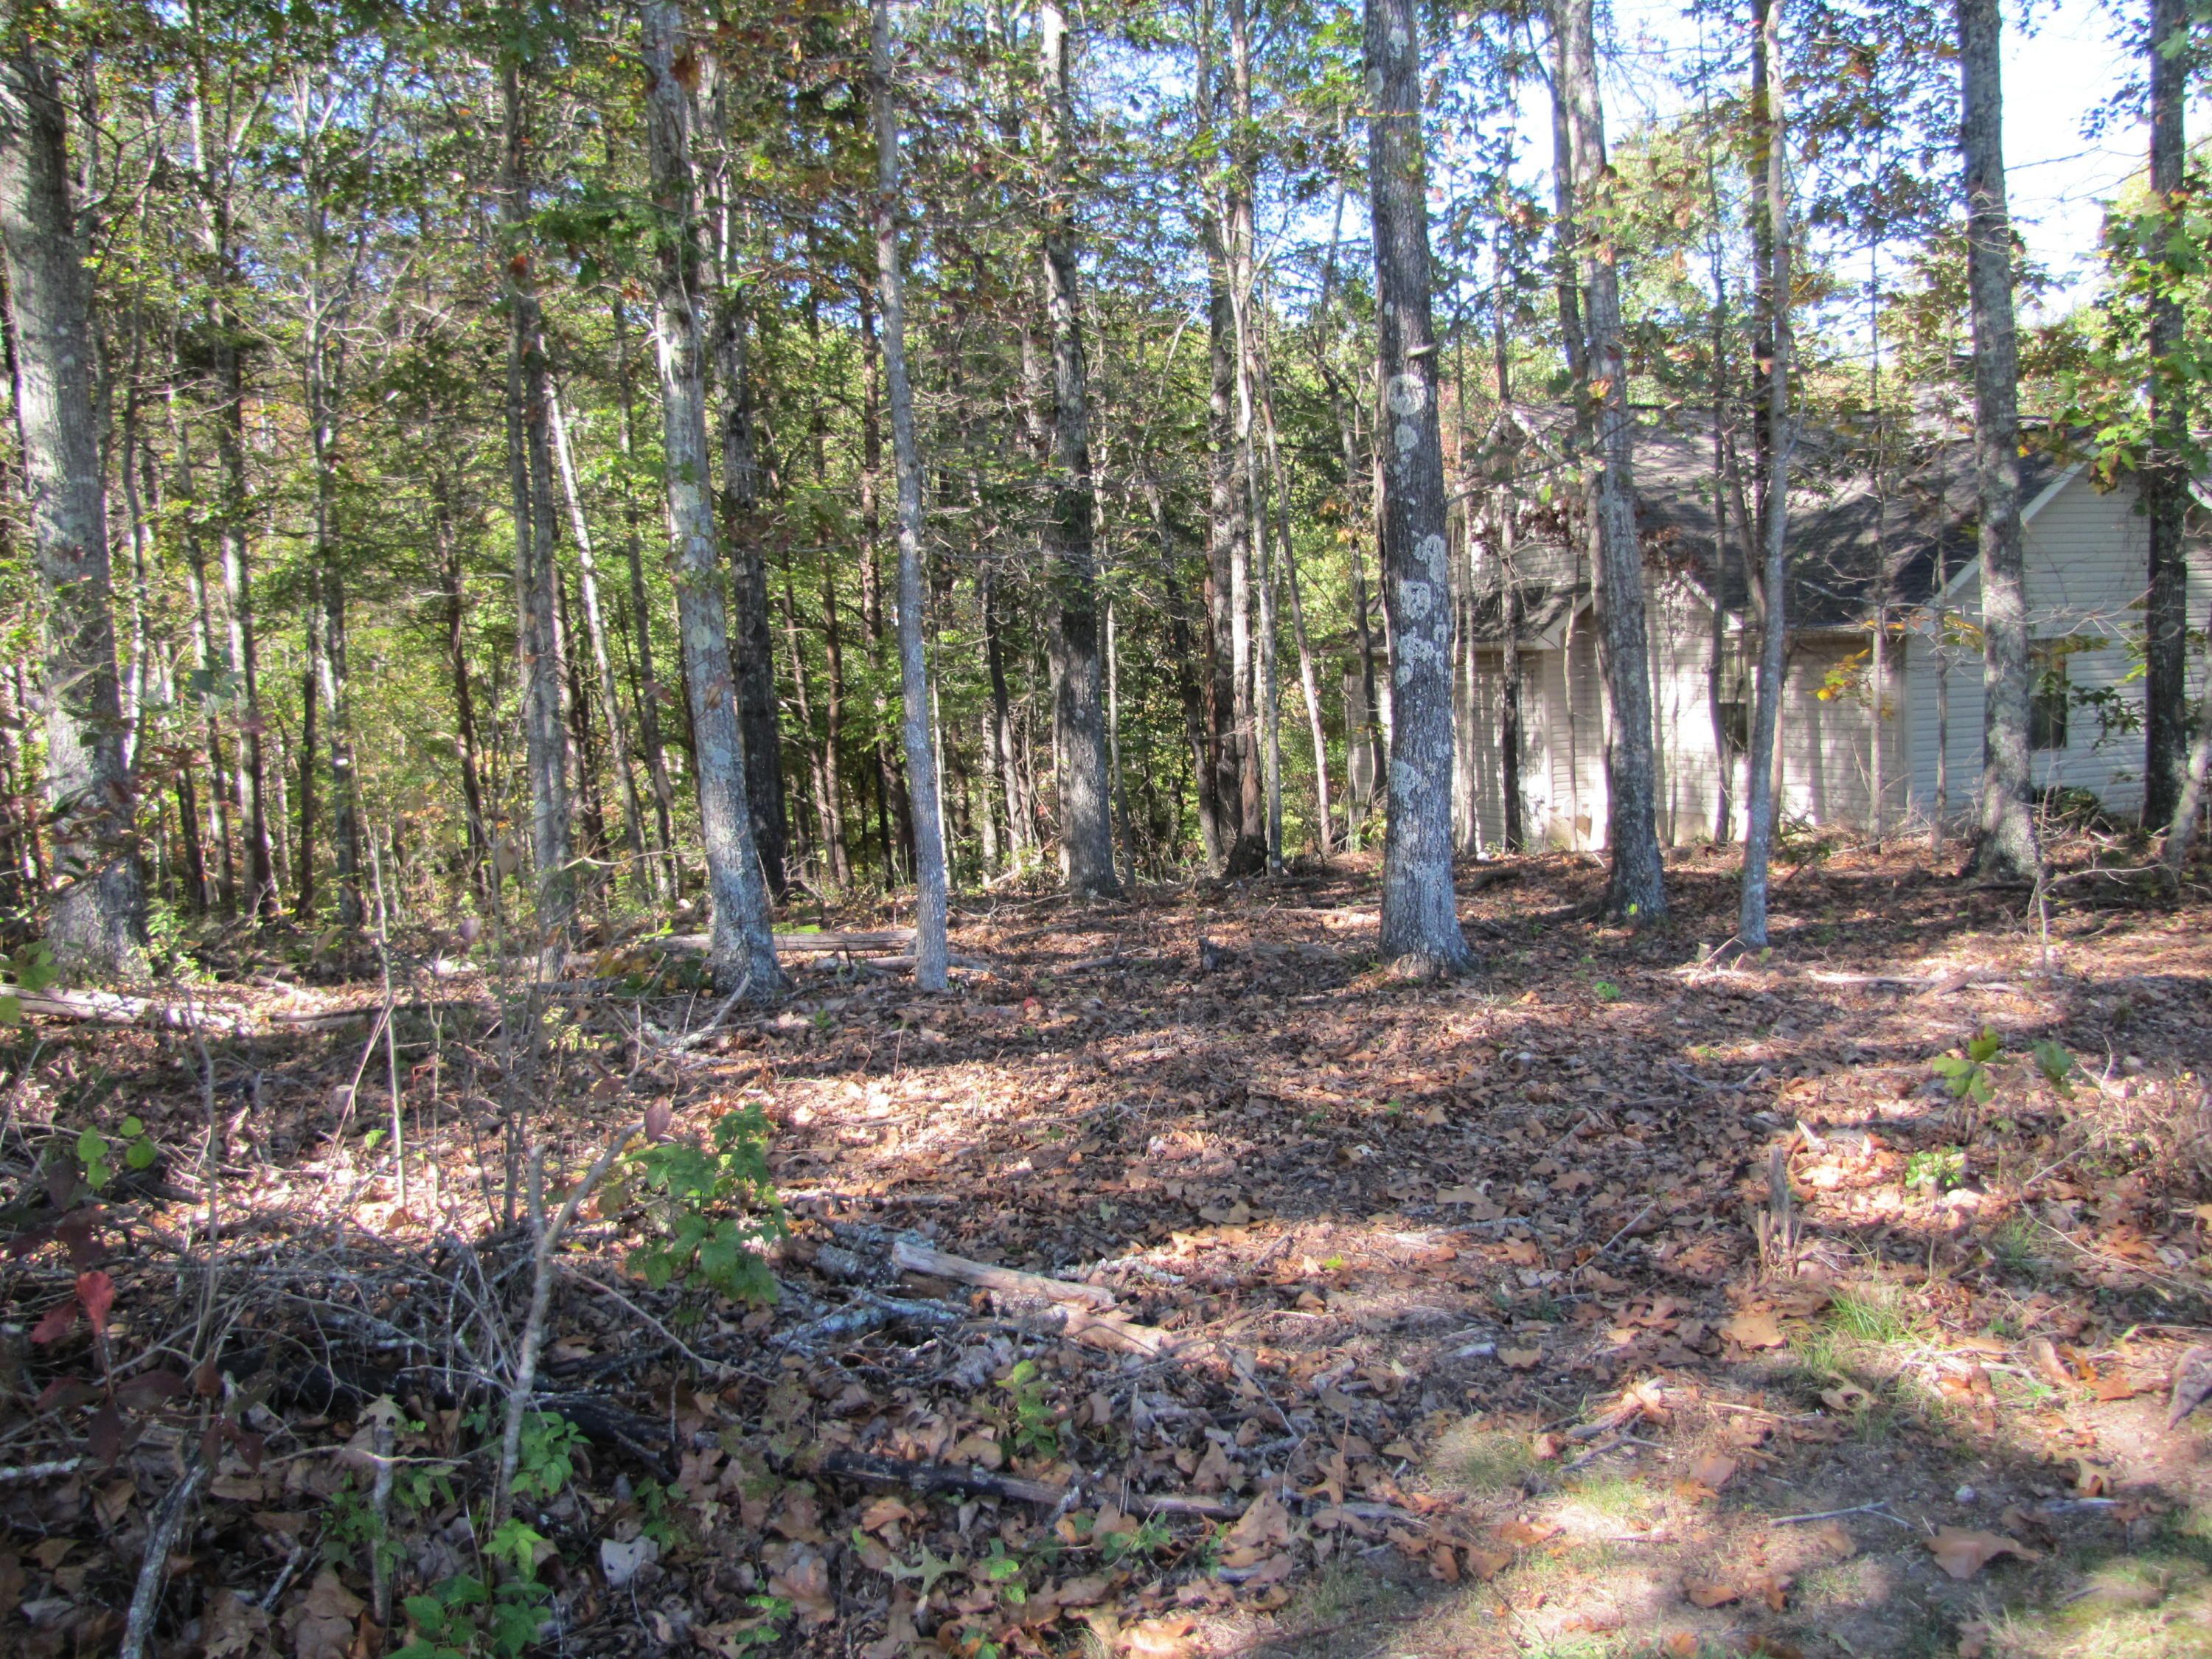 16 Berkeley Square, Fairfield Glade, Tennessee 38558, ,Lots & Acreage,For Sale,Berkeley Square,1020475